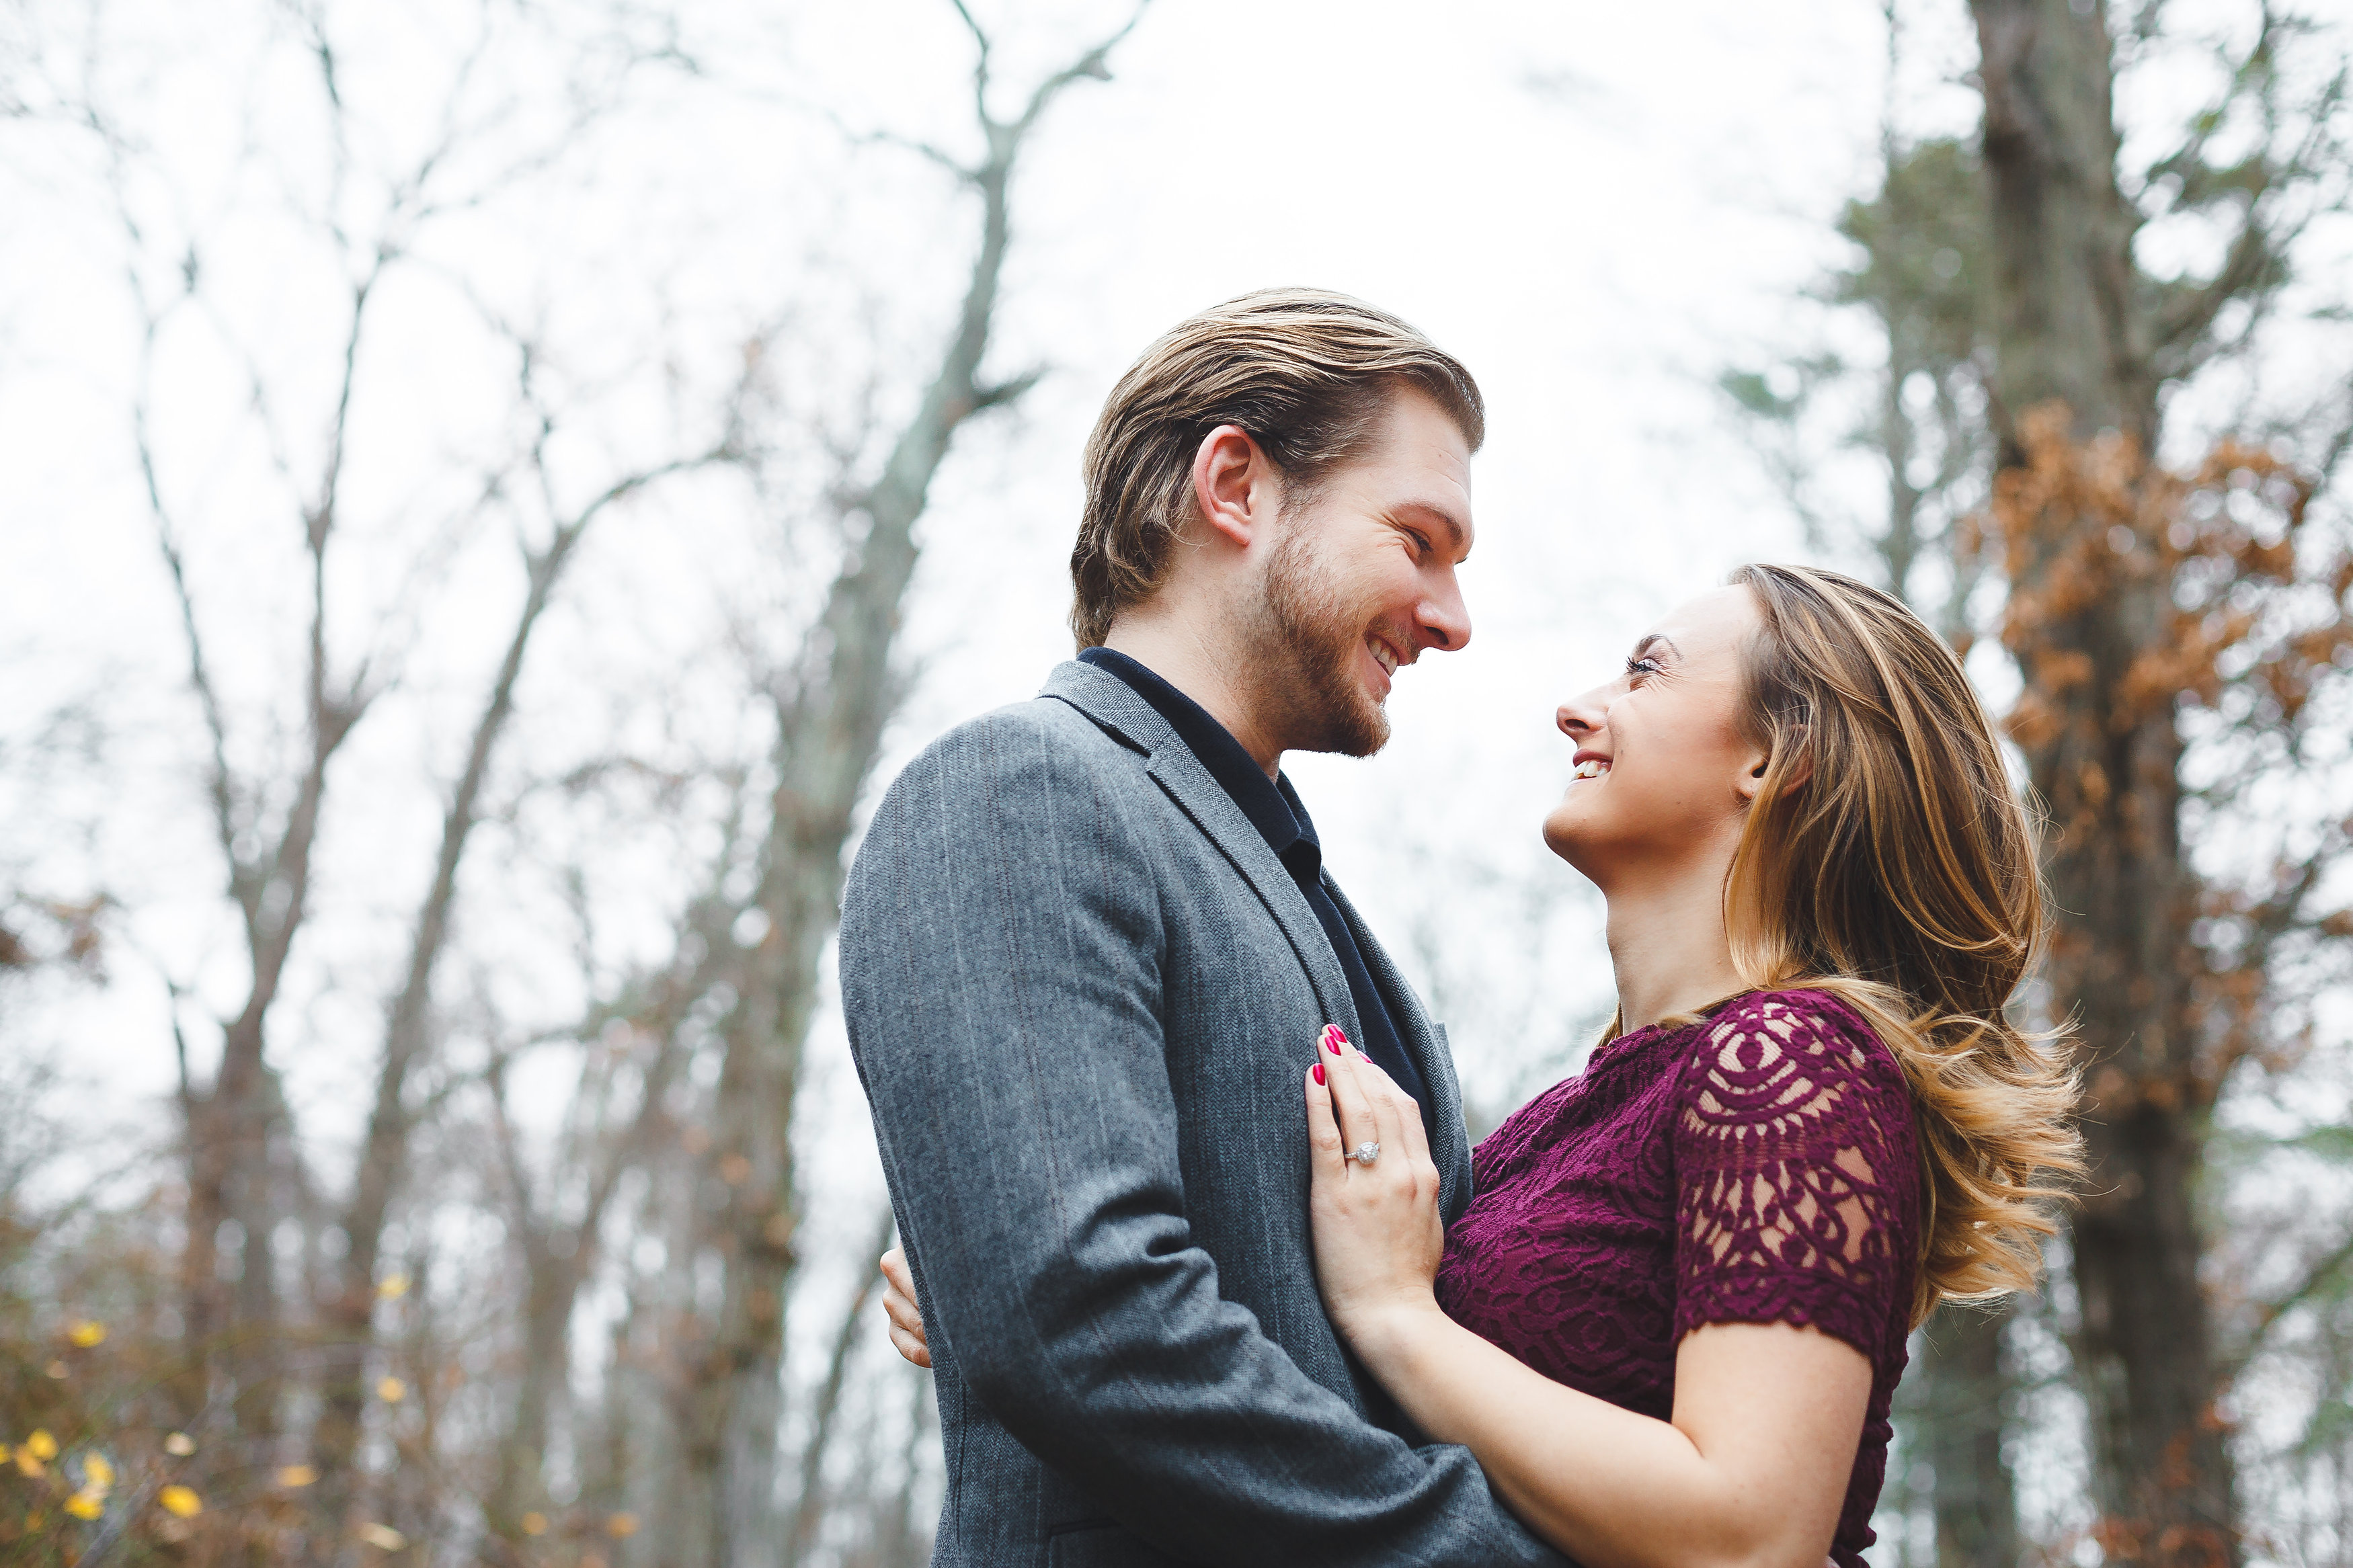 6 Unique Ways To Announce Your Engagement On Social Media